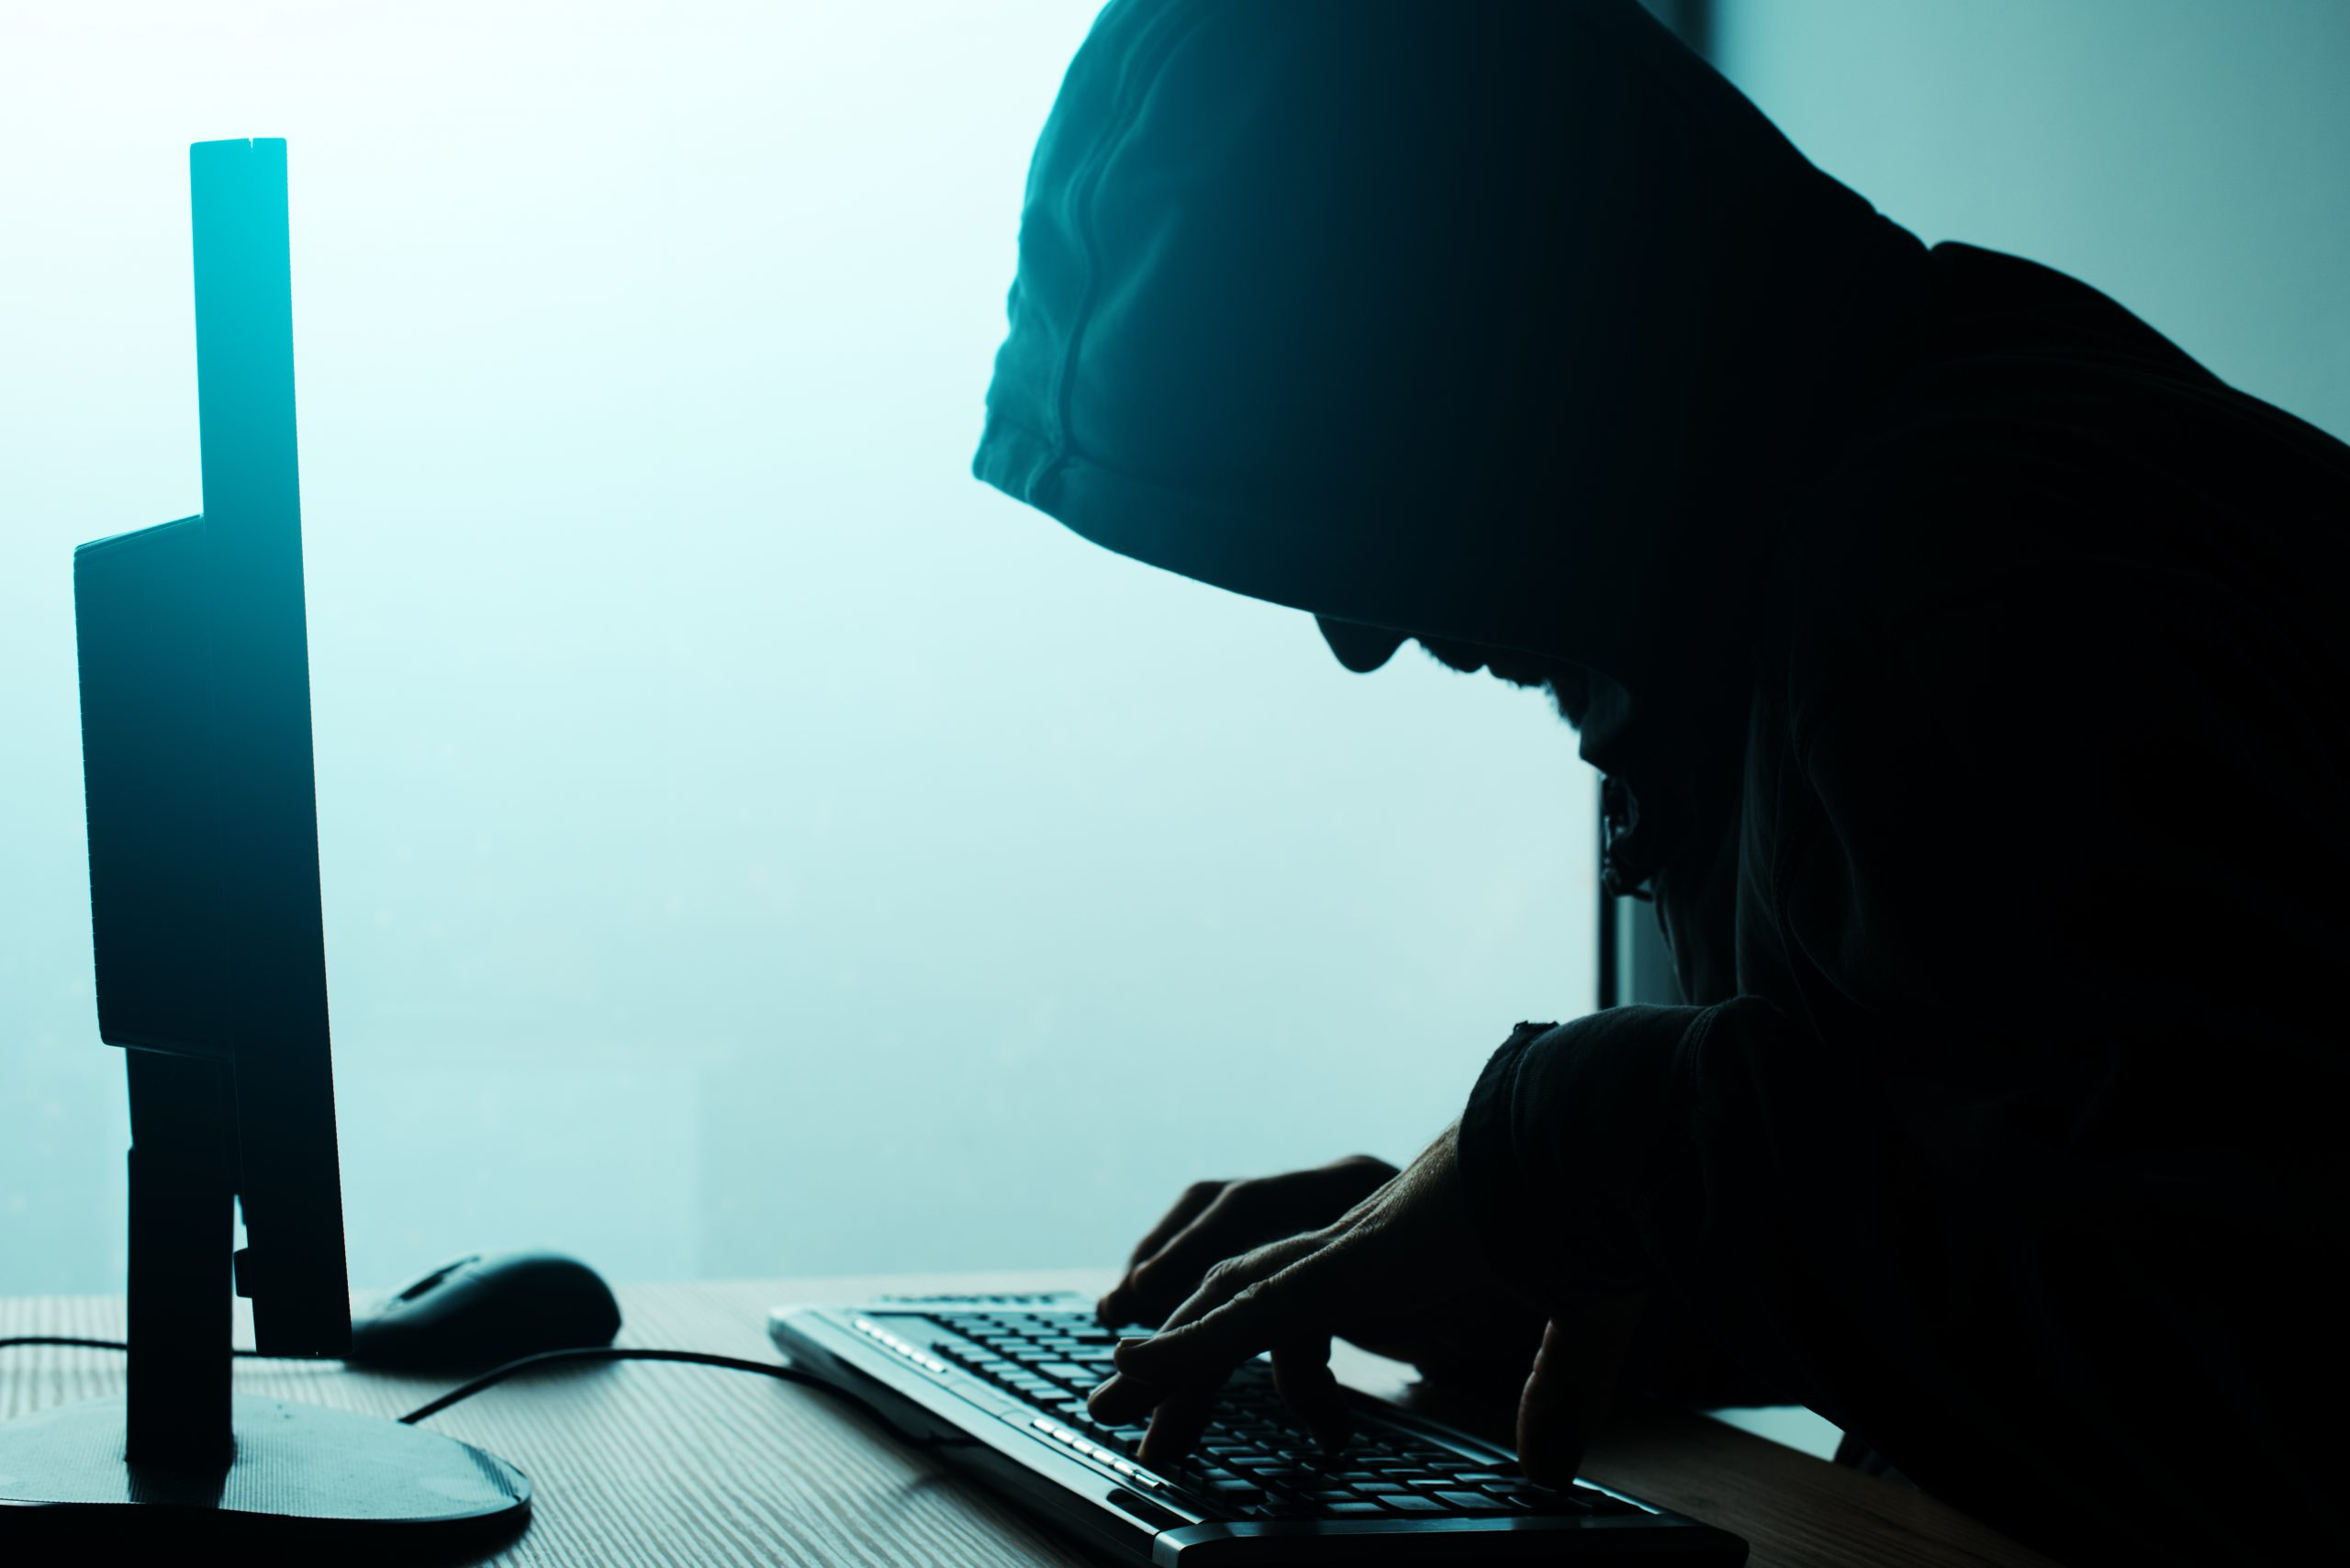 hooded-computer-hacker-hacking-network-P2V3SQY